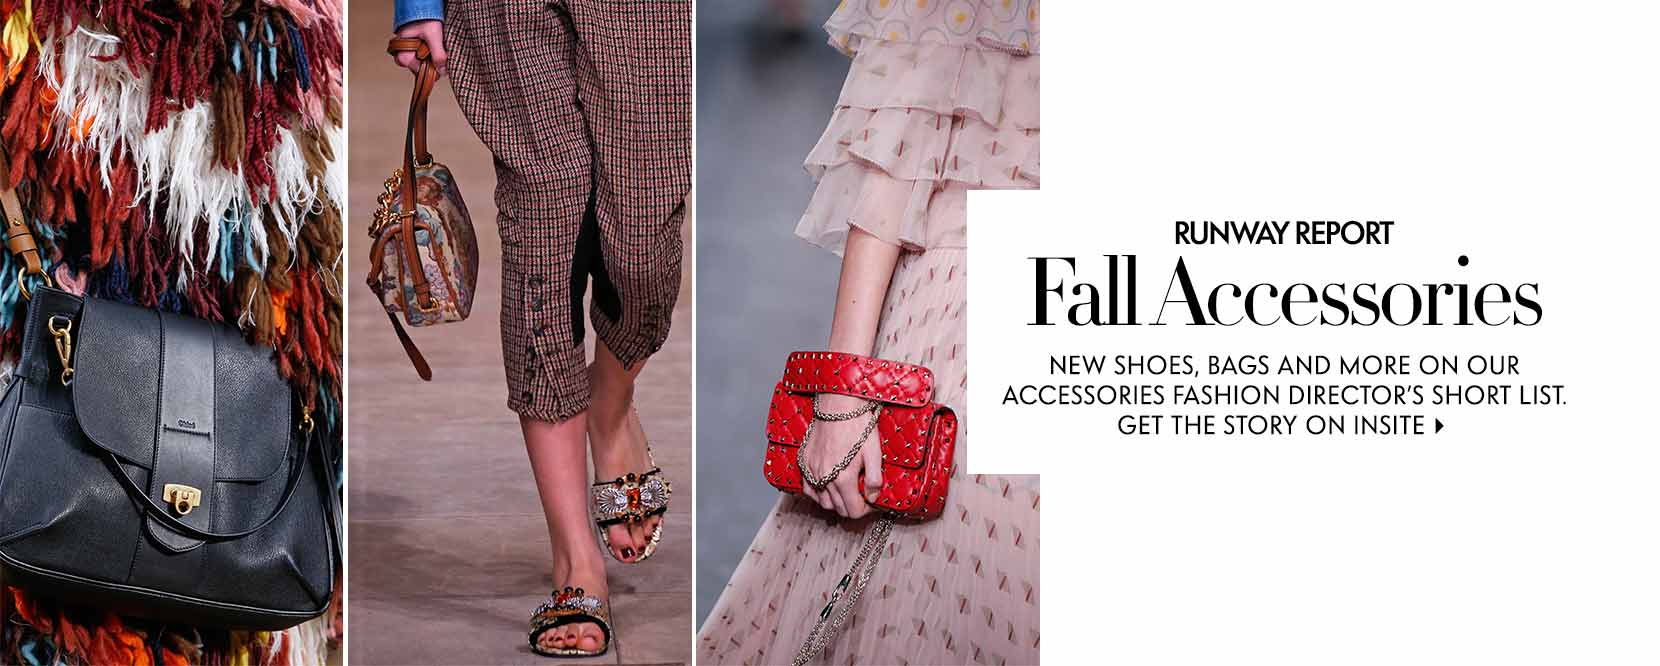 Runway Report Fall Accessories new shoes, bags and more on our accessories fashion director's short list. Get the story on Insite